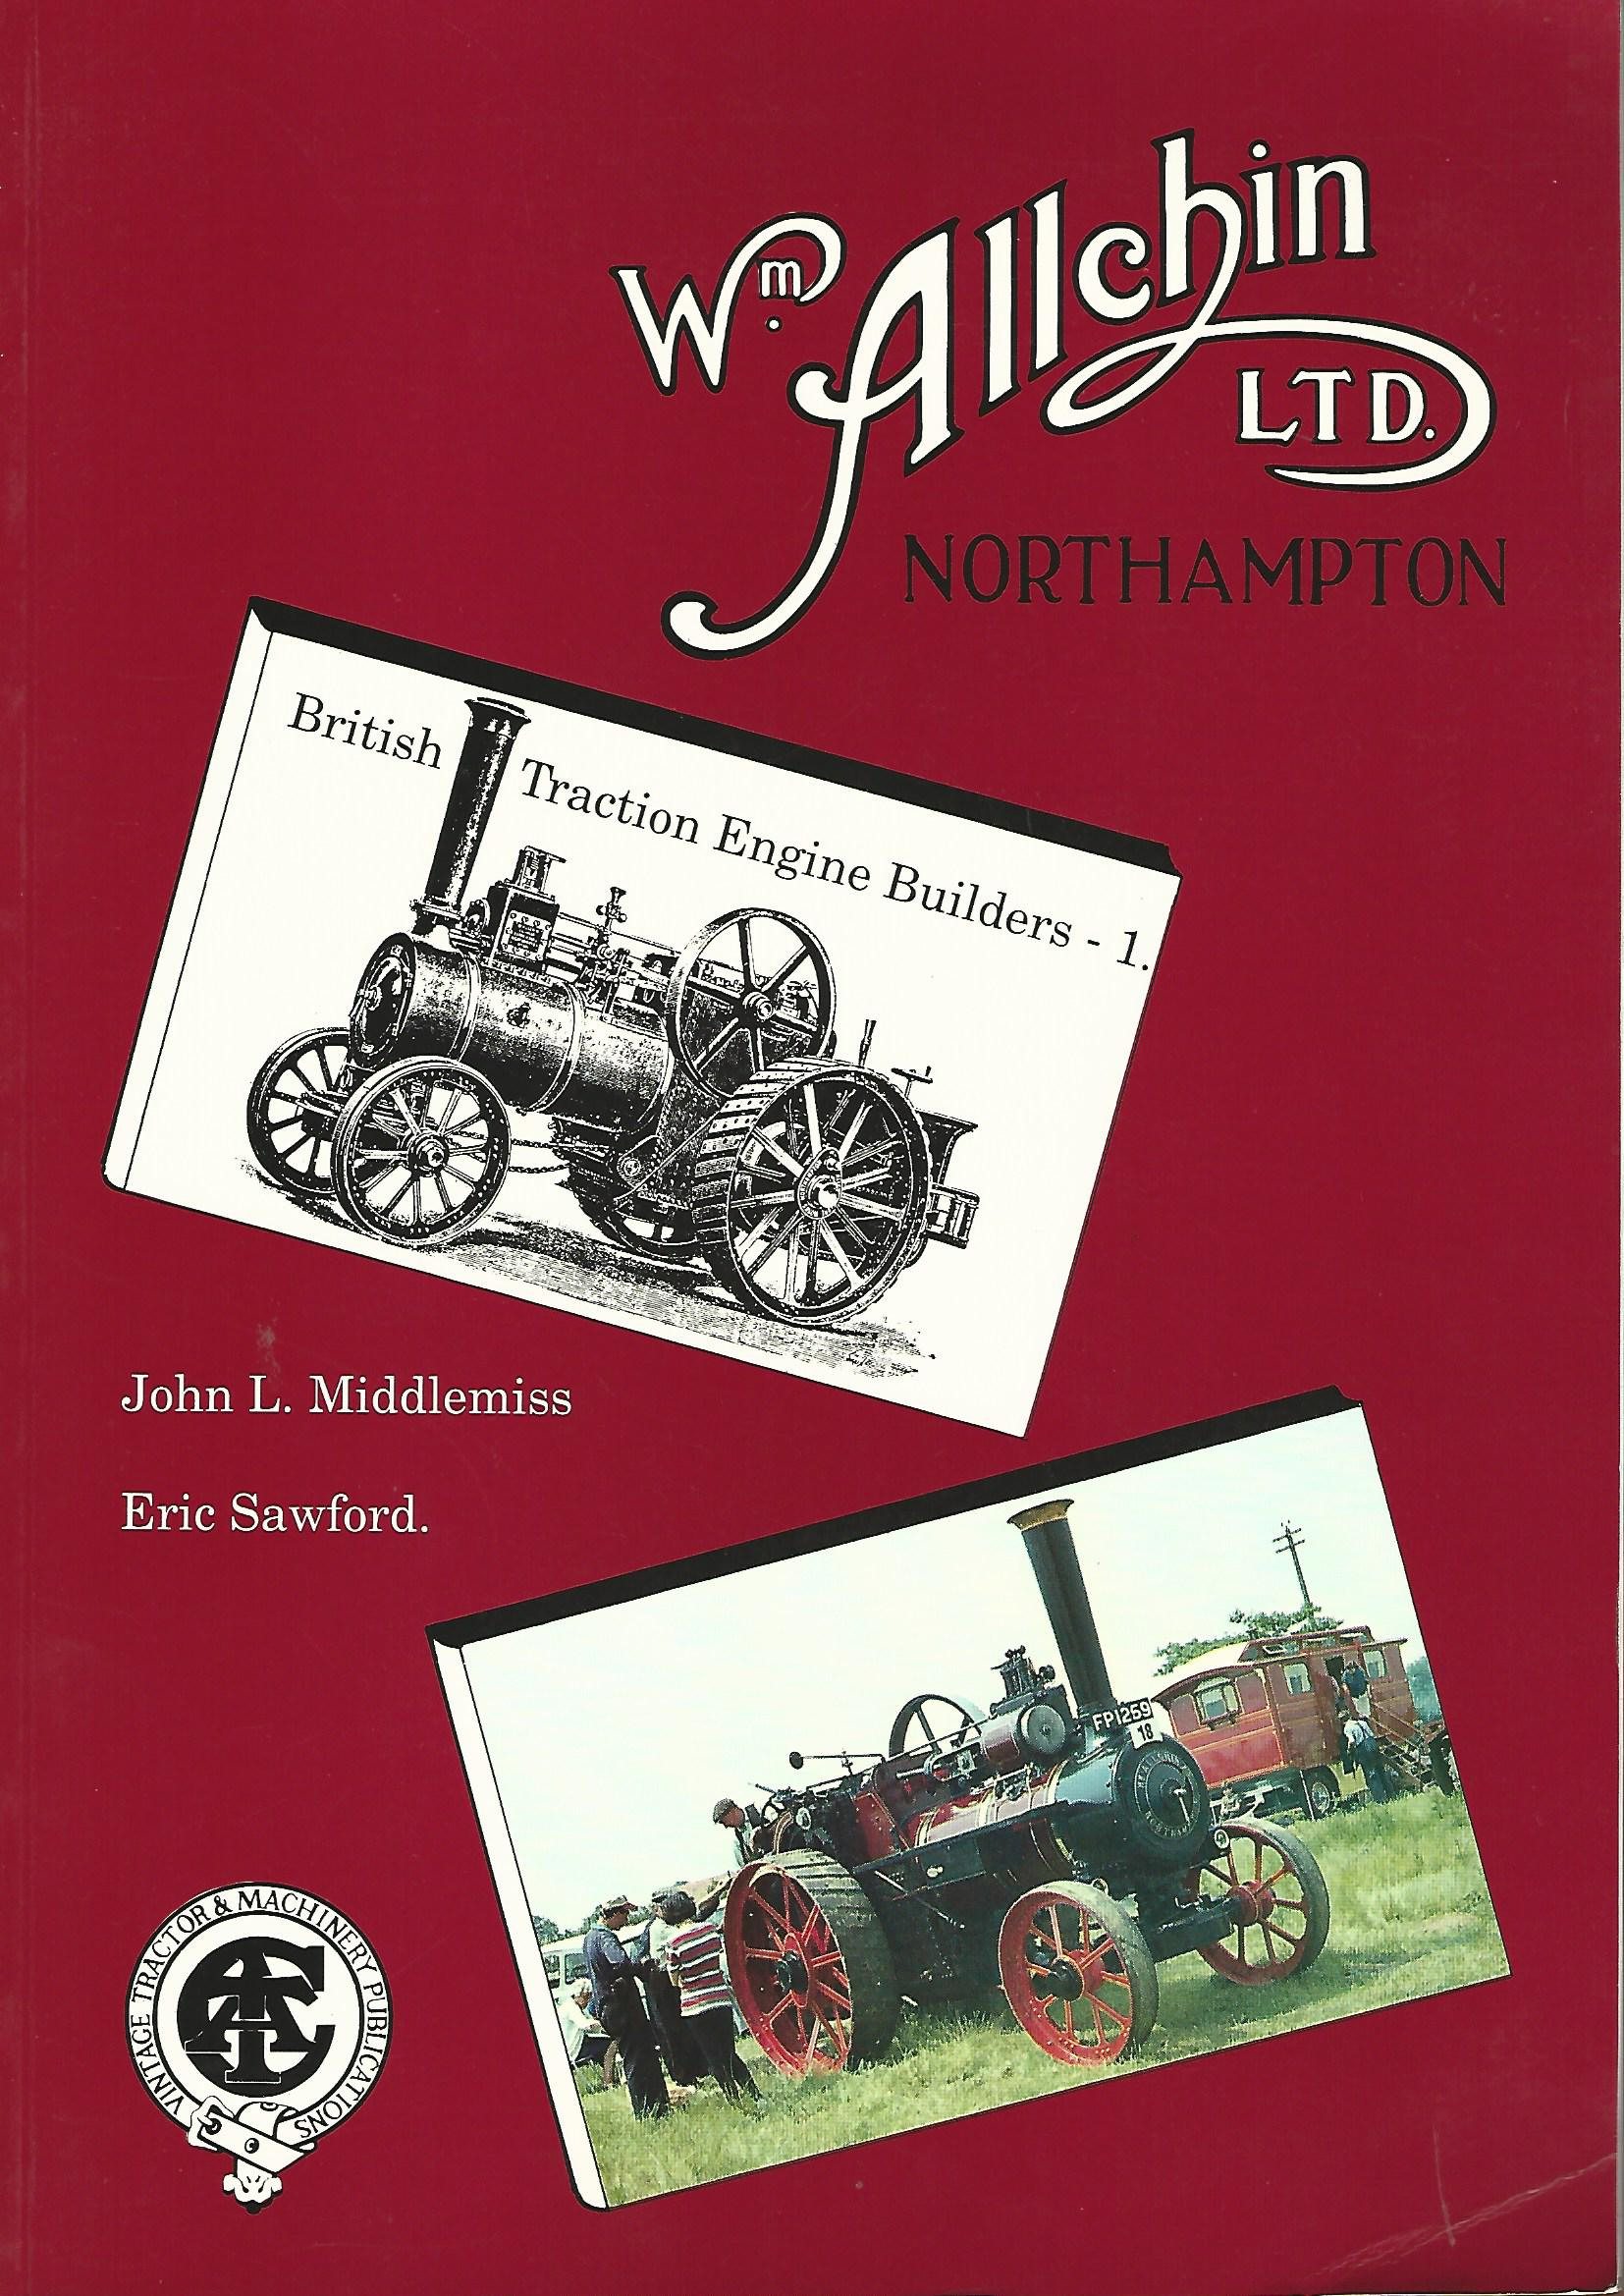 Image for William Allchin Ltd. British Traction Engine Builders.